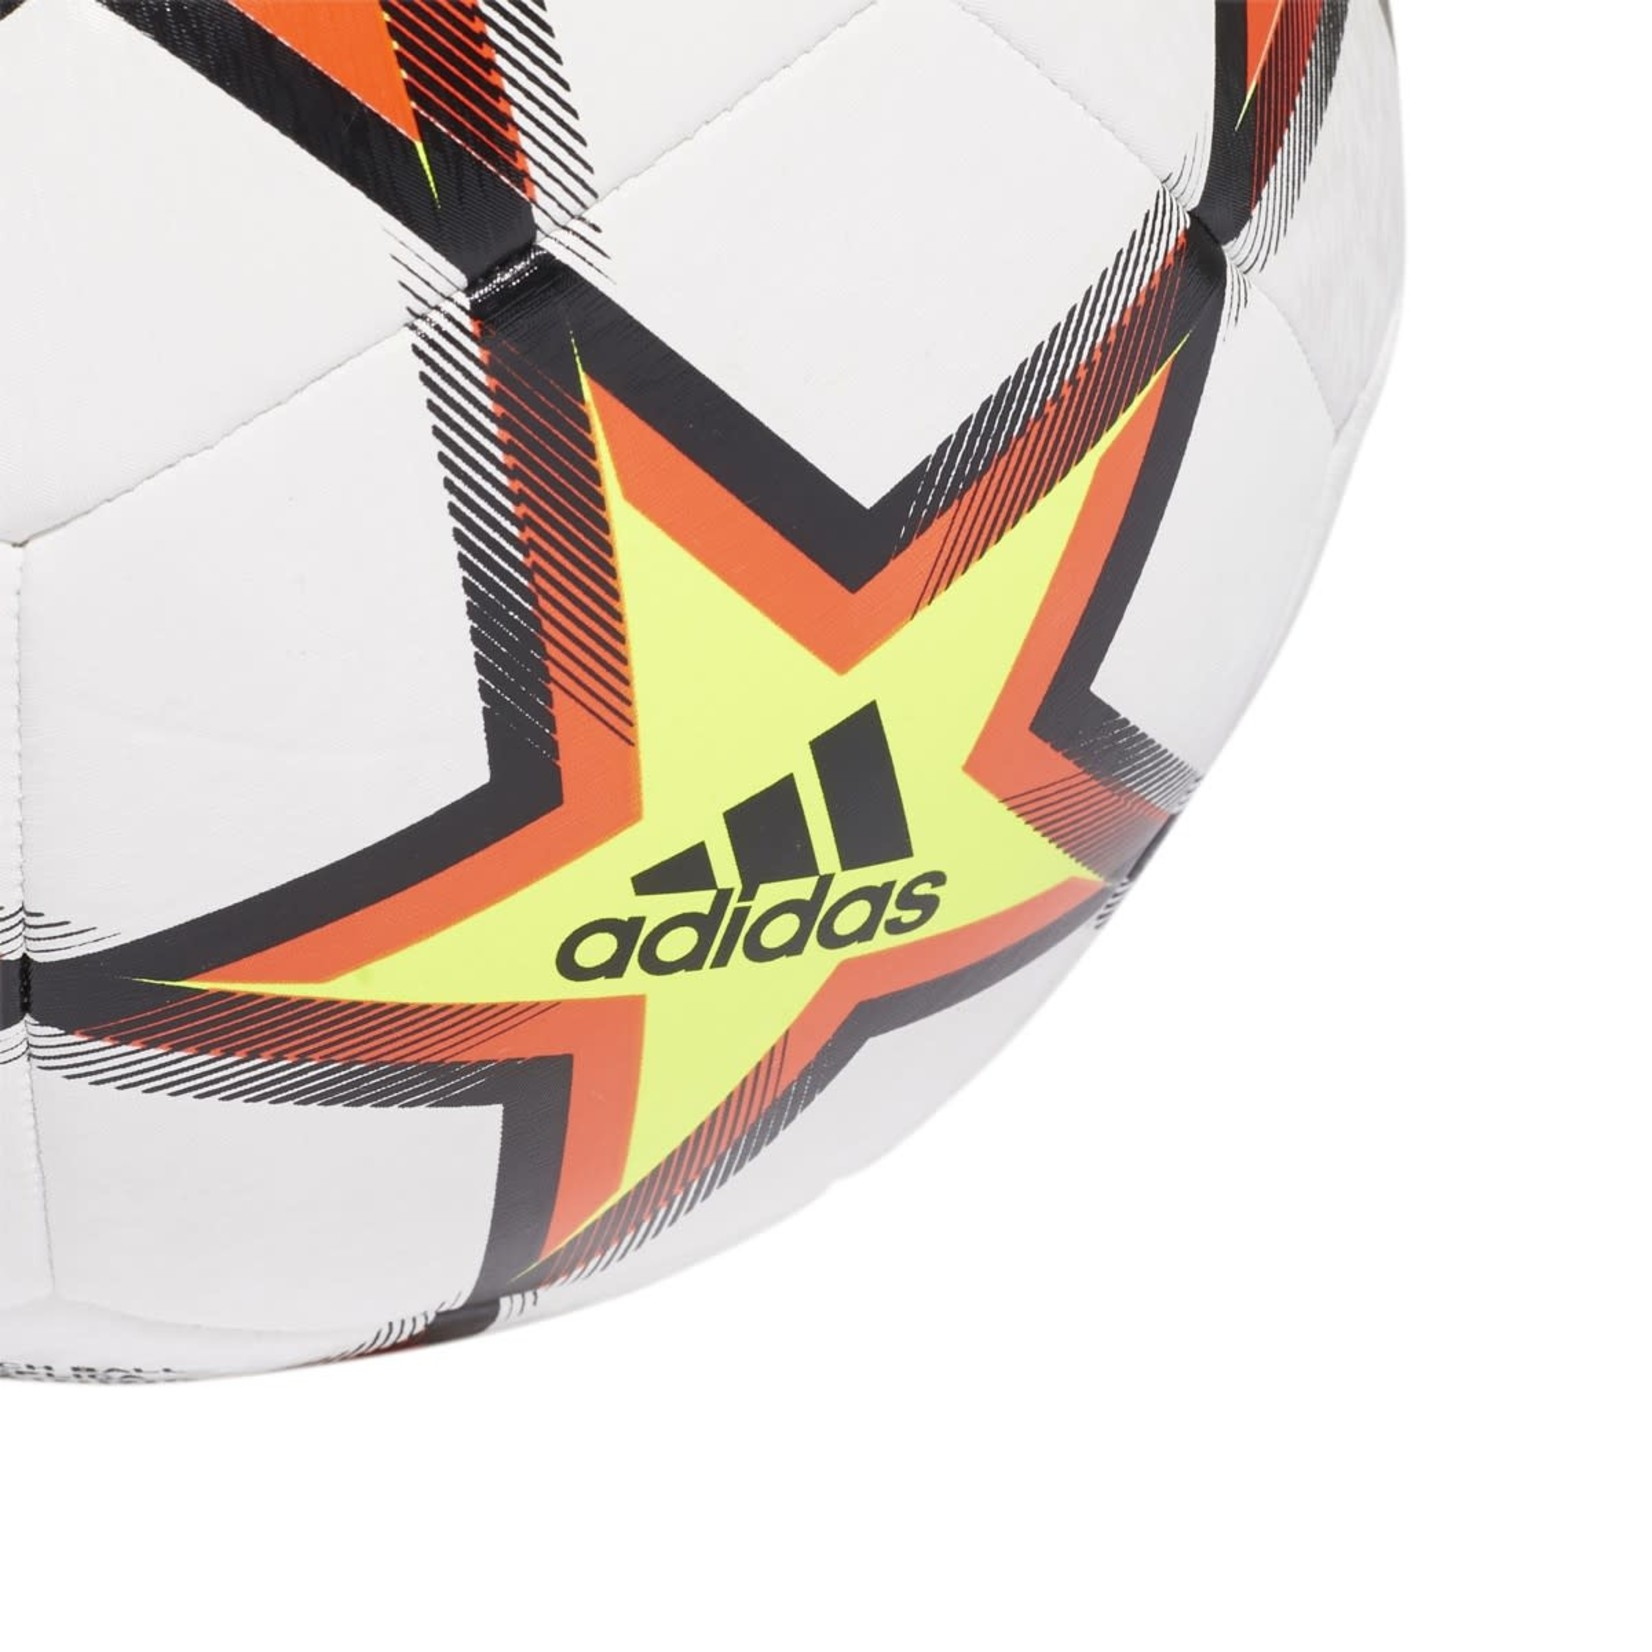 ADIDAS FINALE 21 UCL TRAINING PYROSTORM BALL (WHITE/RED)